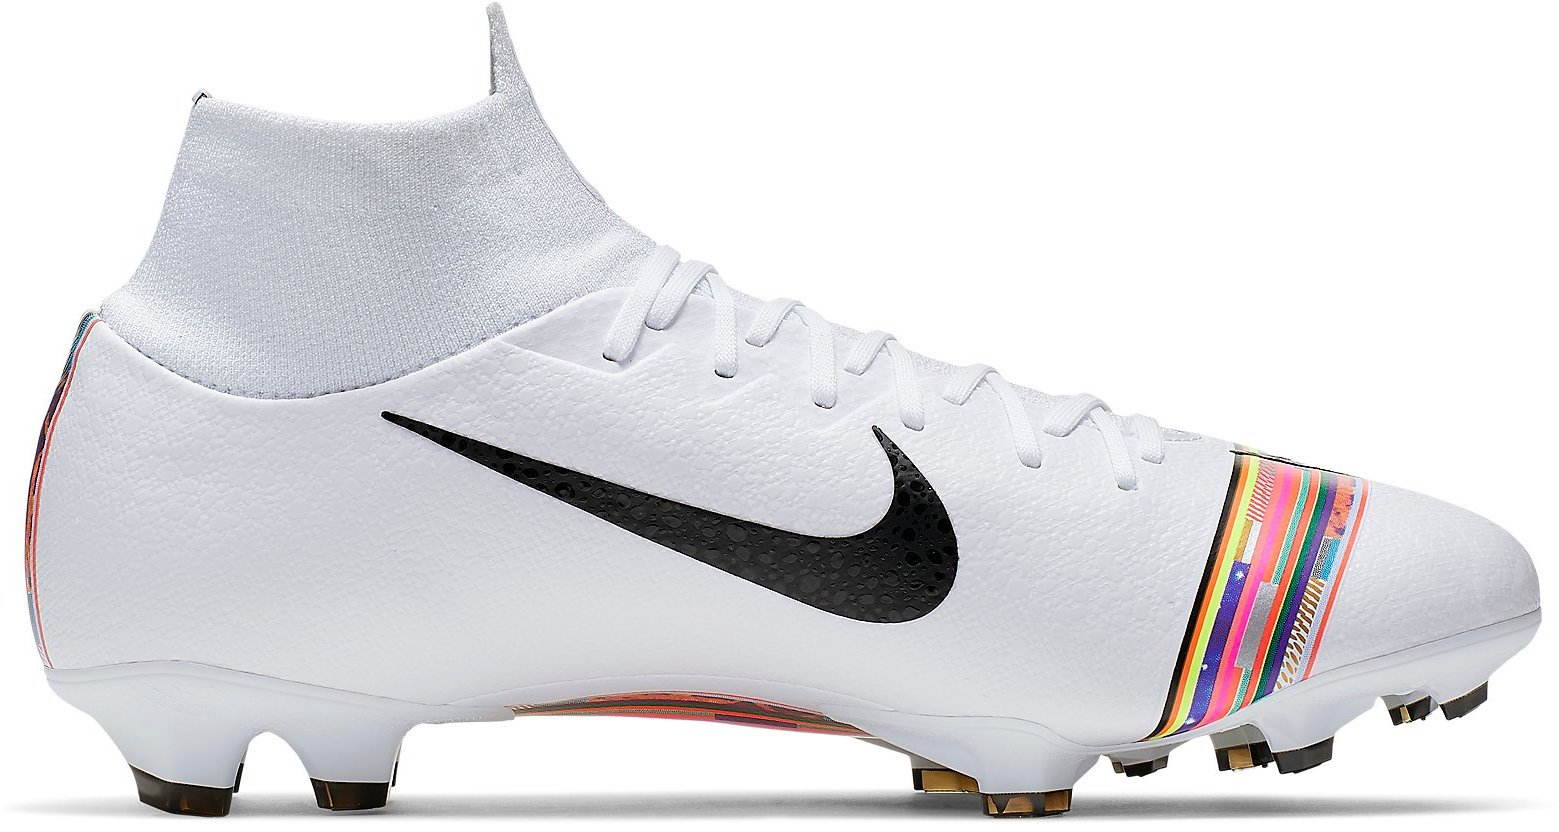 cr7 soccer cleats 2019